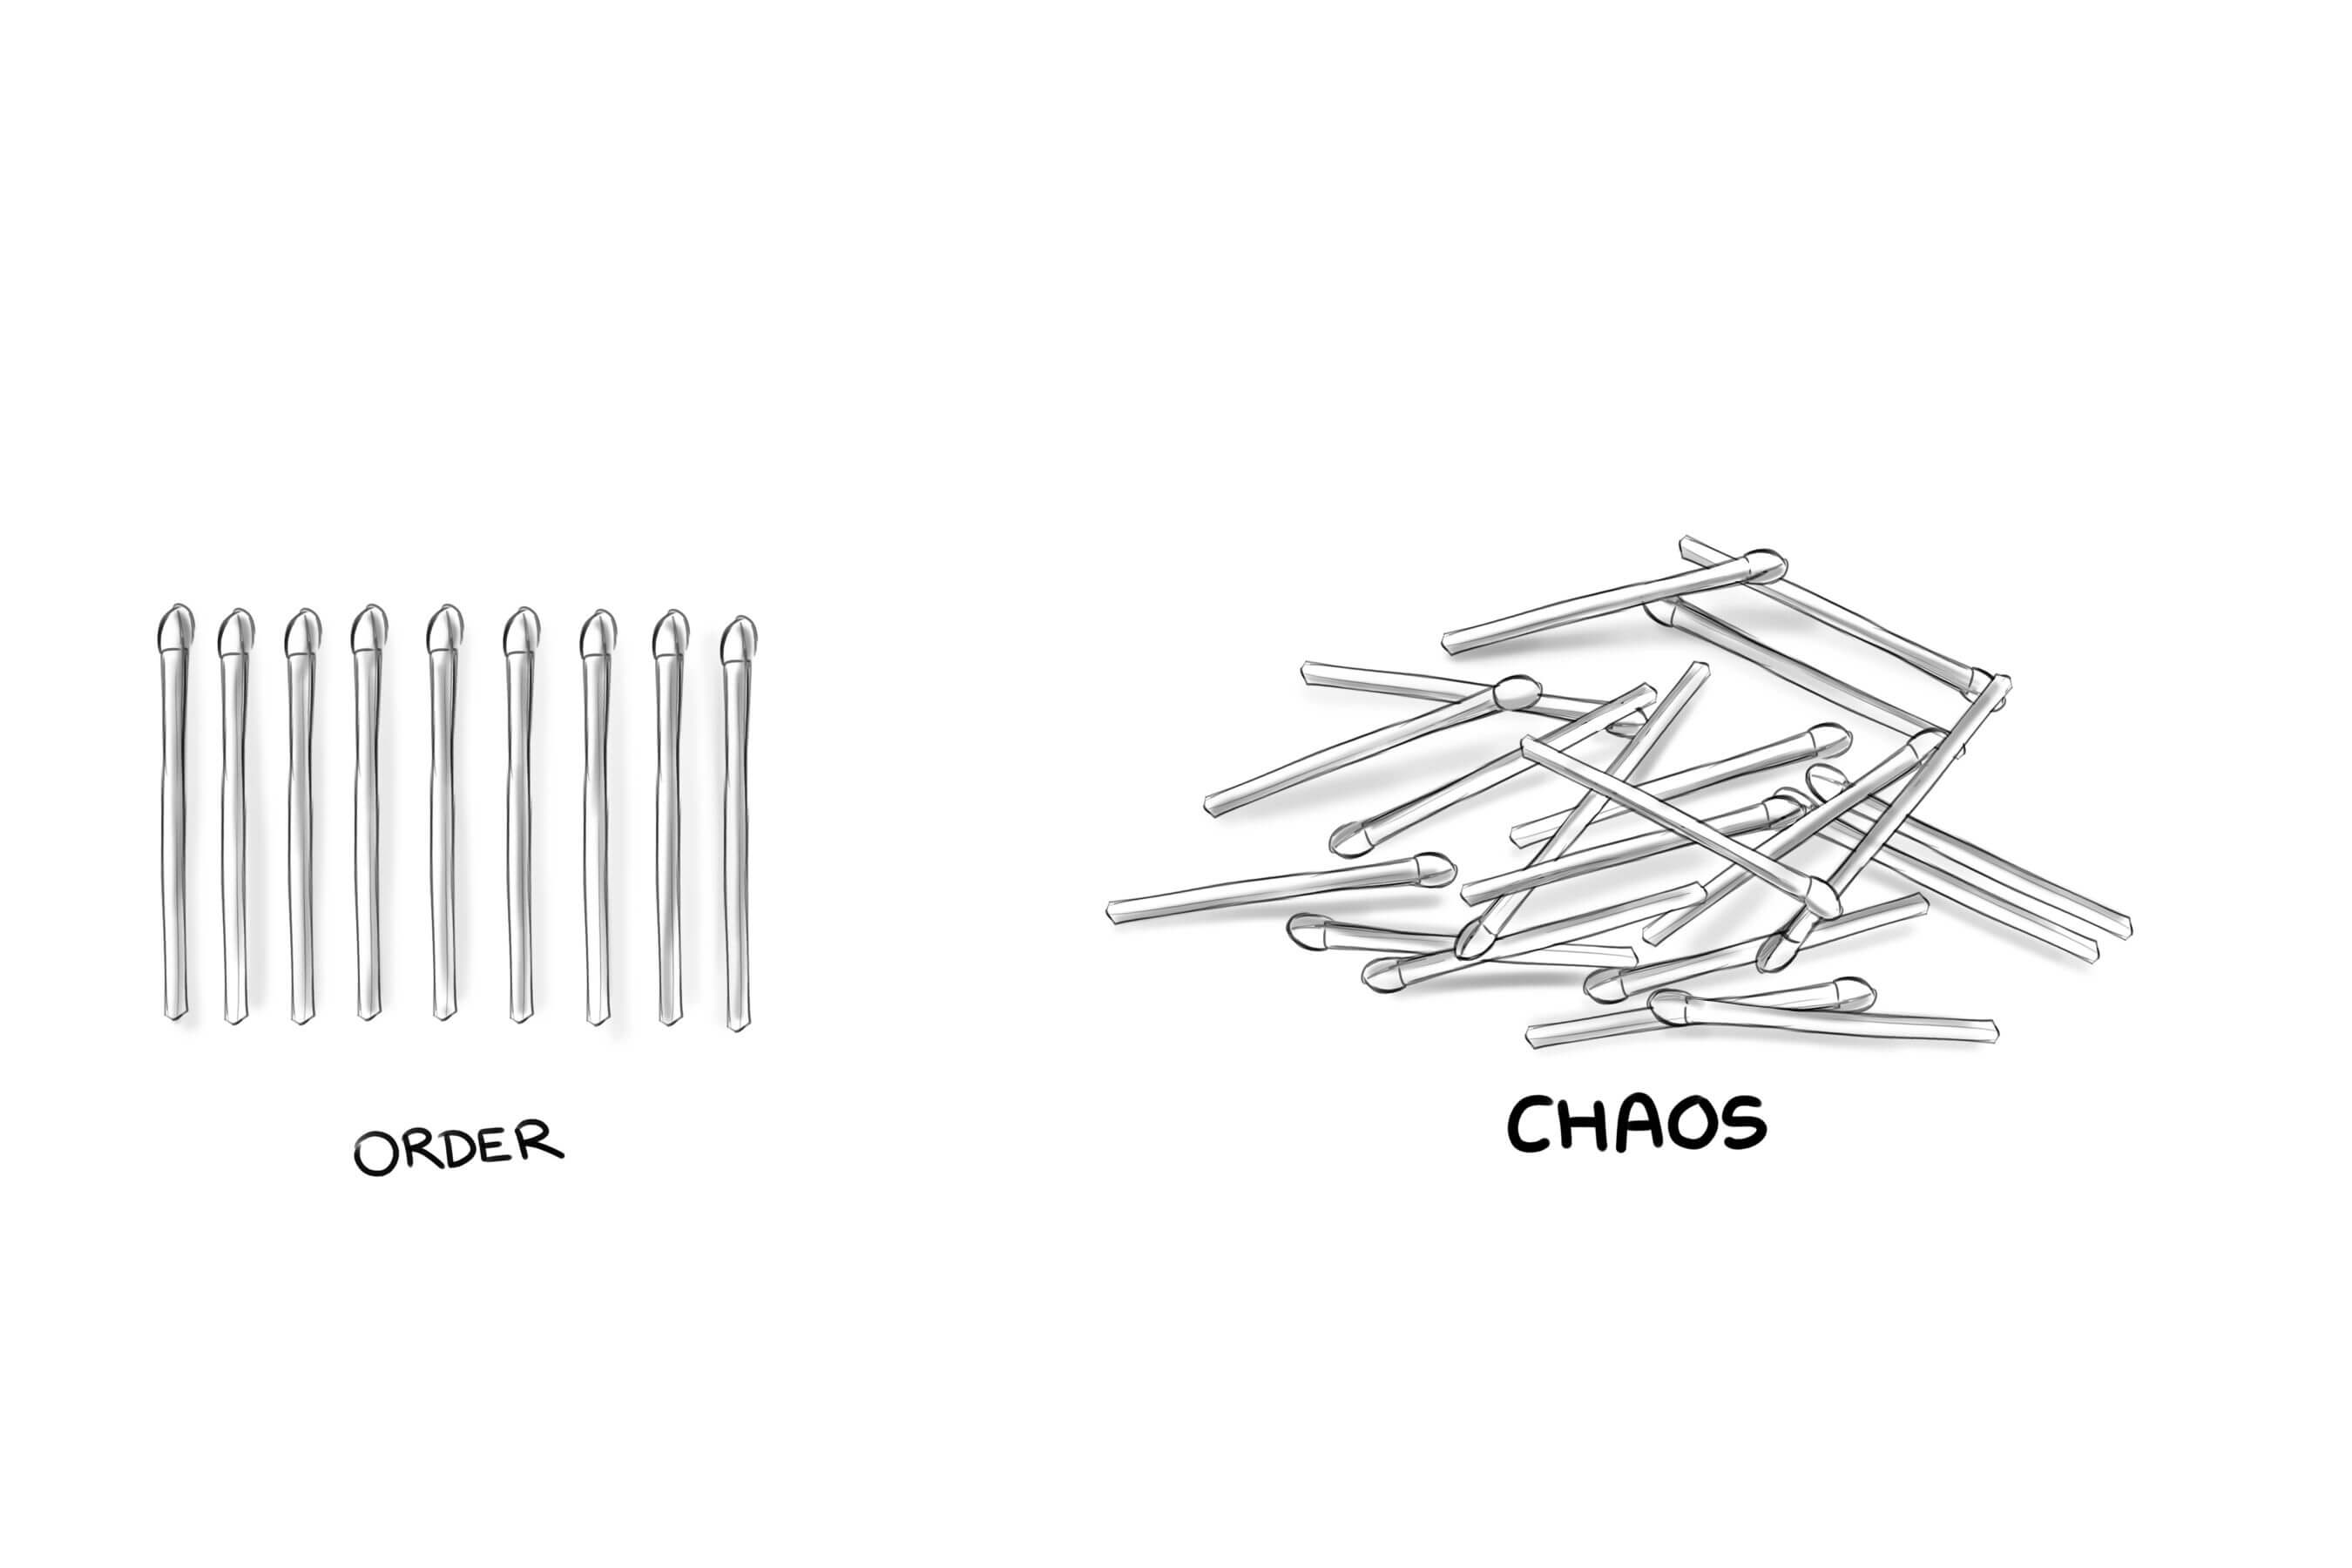 SIDE-BY-SIDE ORDER VS. CHAOS